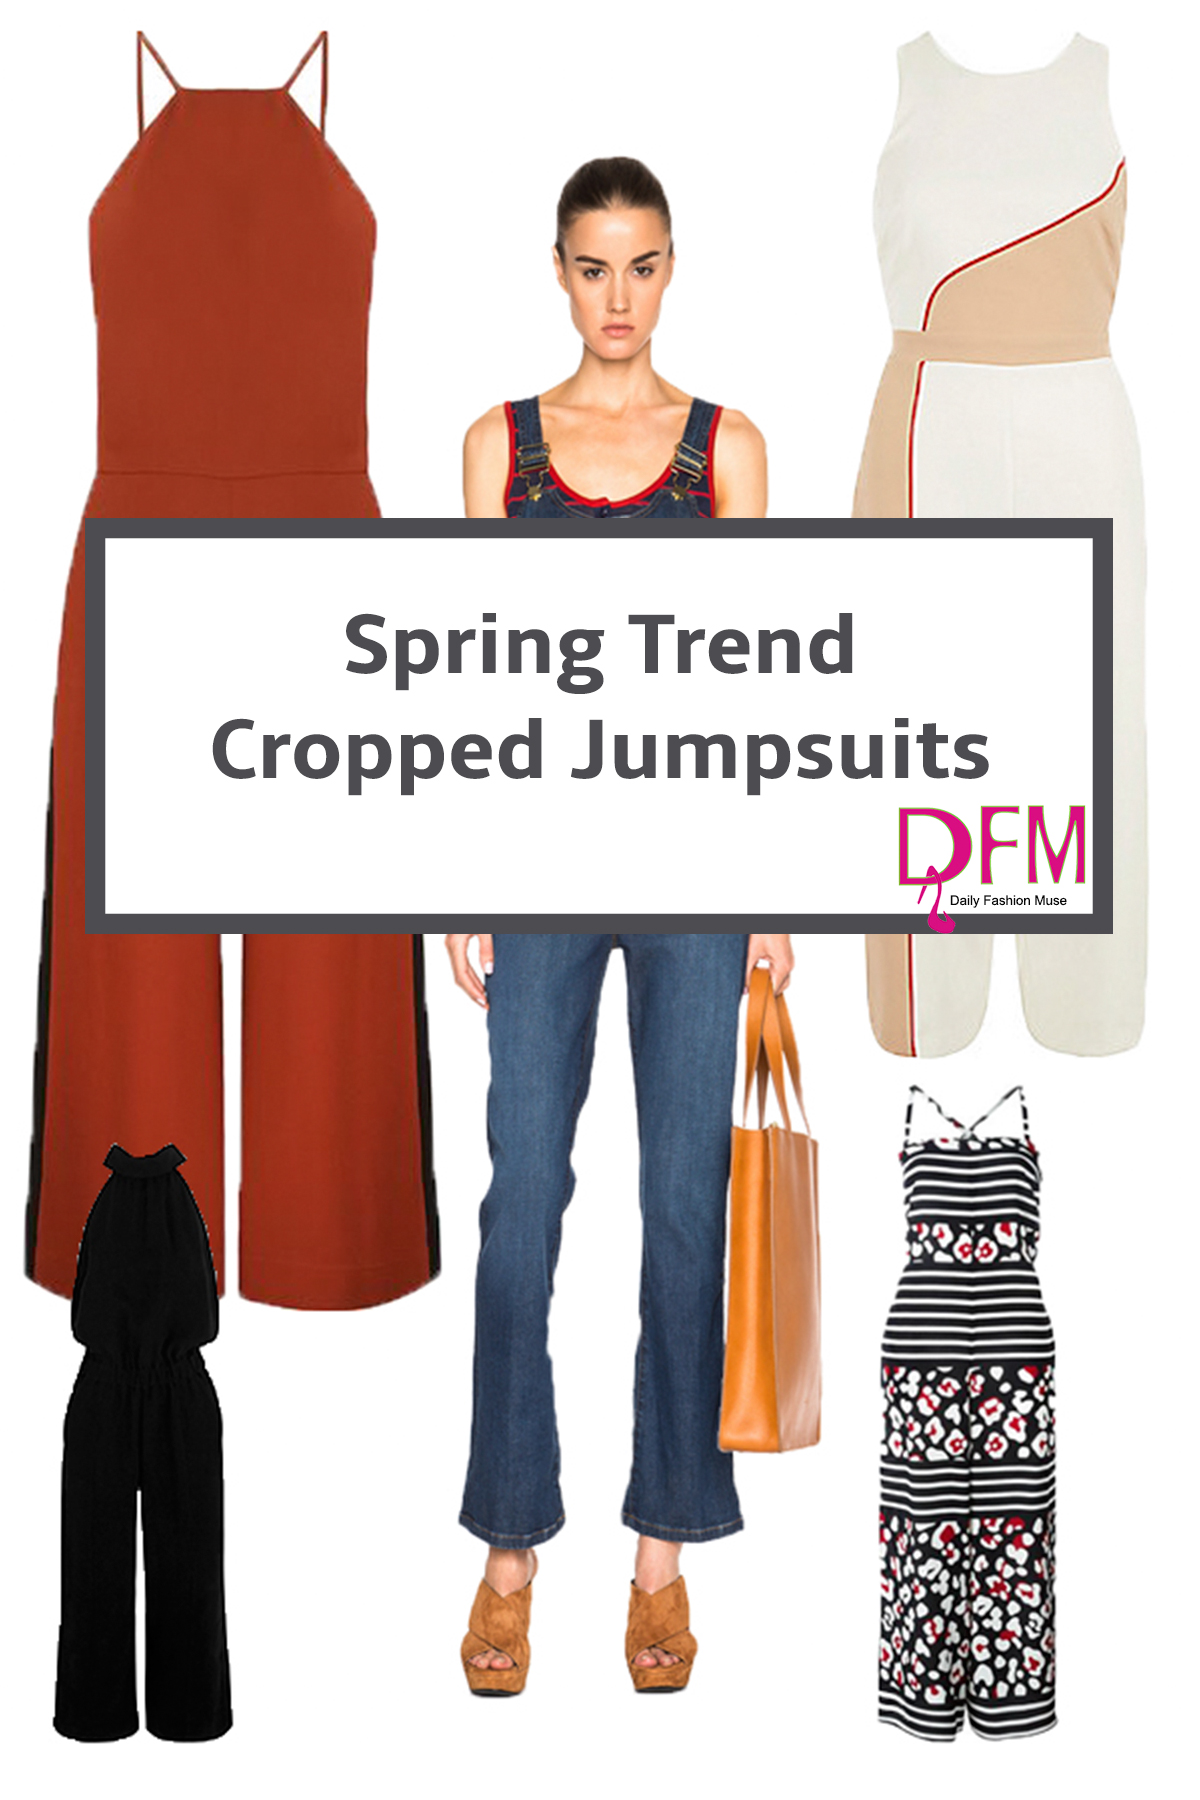 The latest spring trend is a cropped jumpsuit.